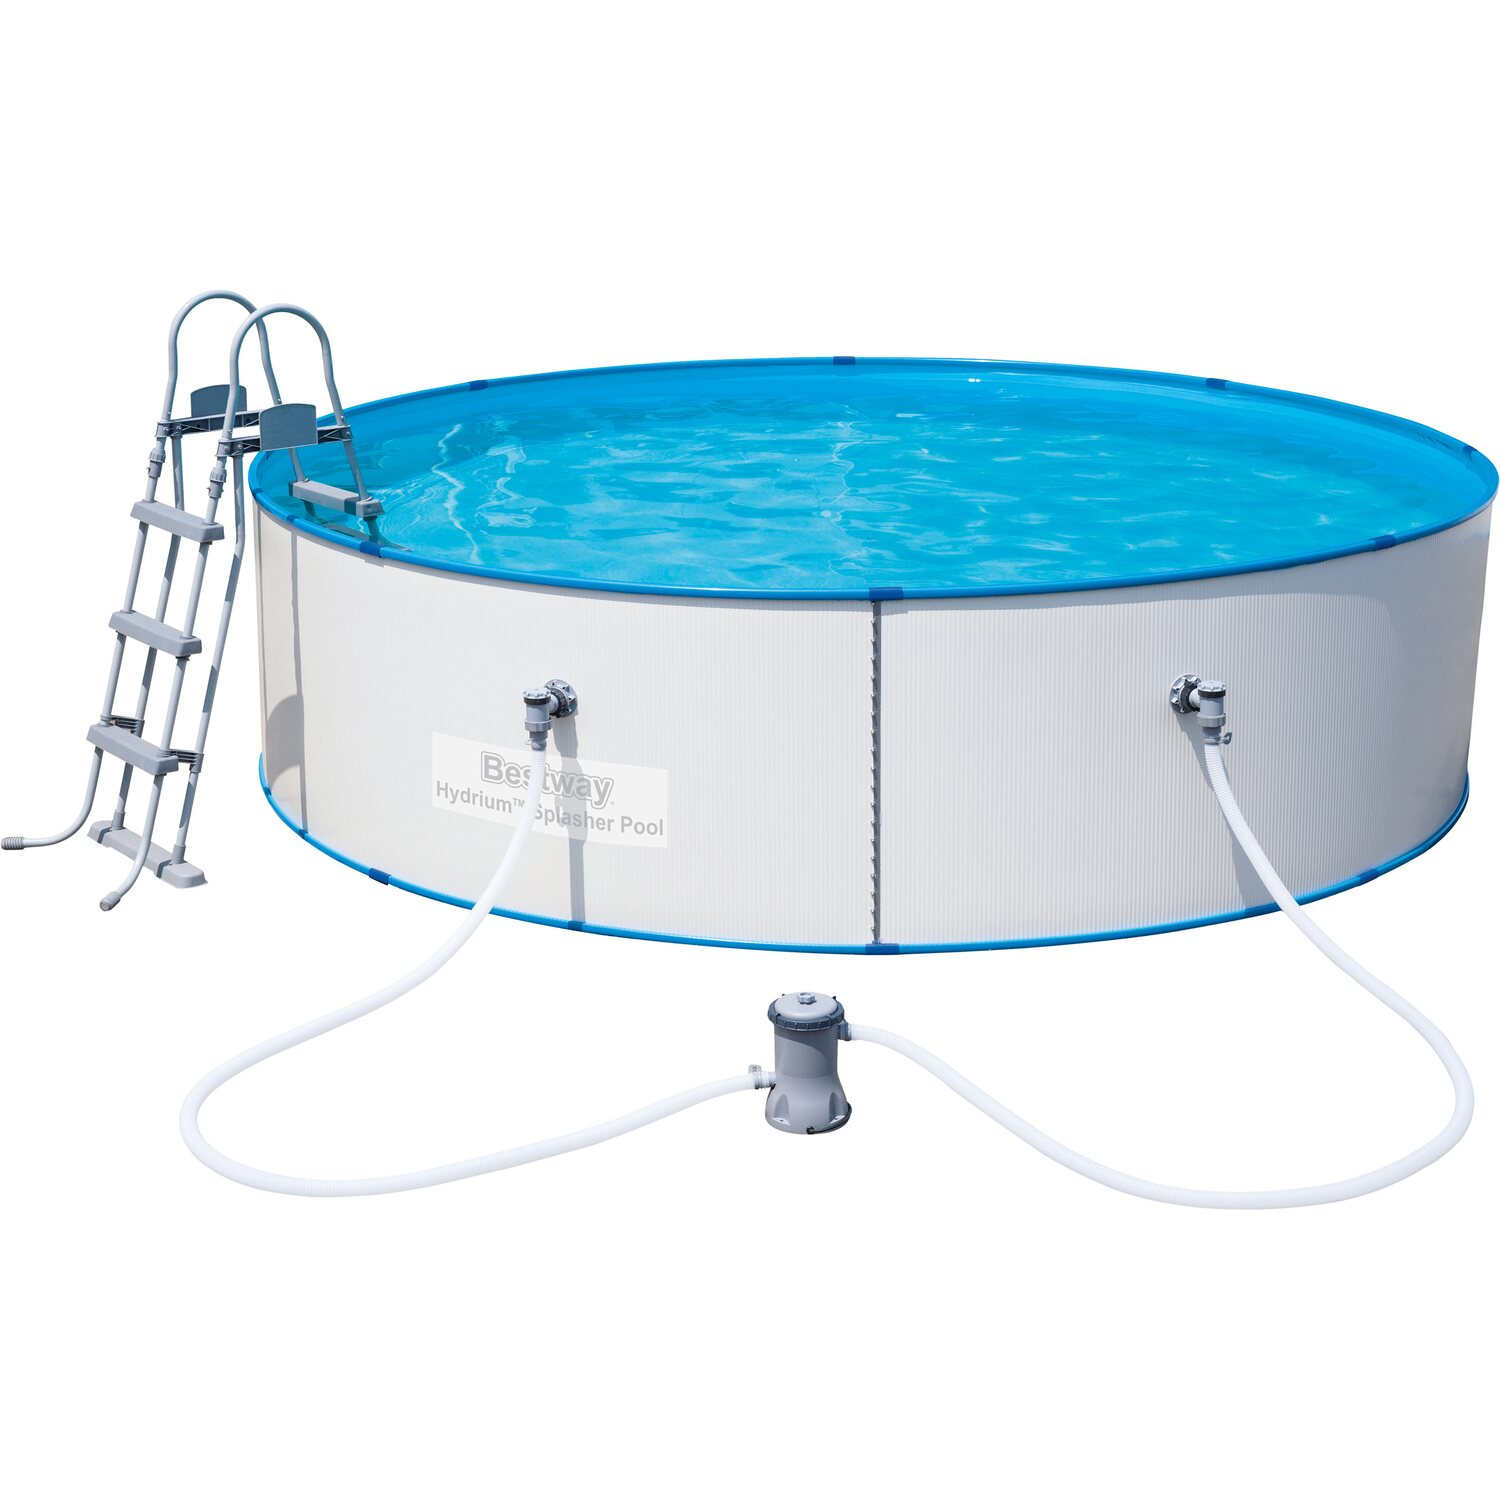 Bestway stahlwand pool set hydrium splasher 360 cm x 90 for Bestway pool bei obi